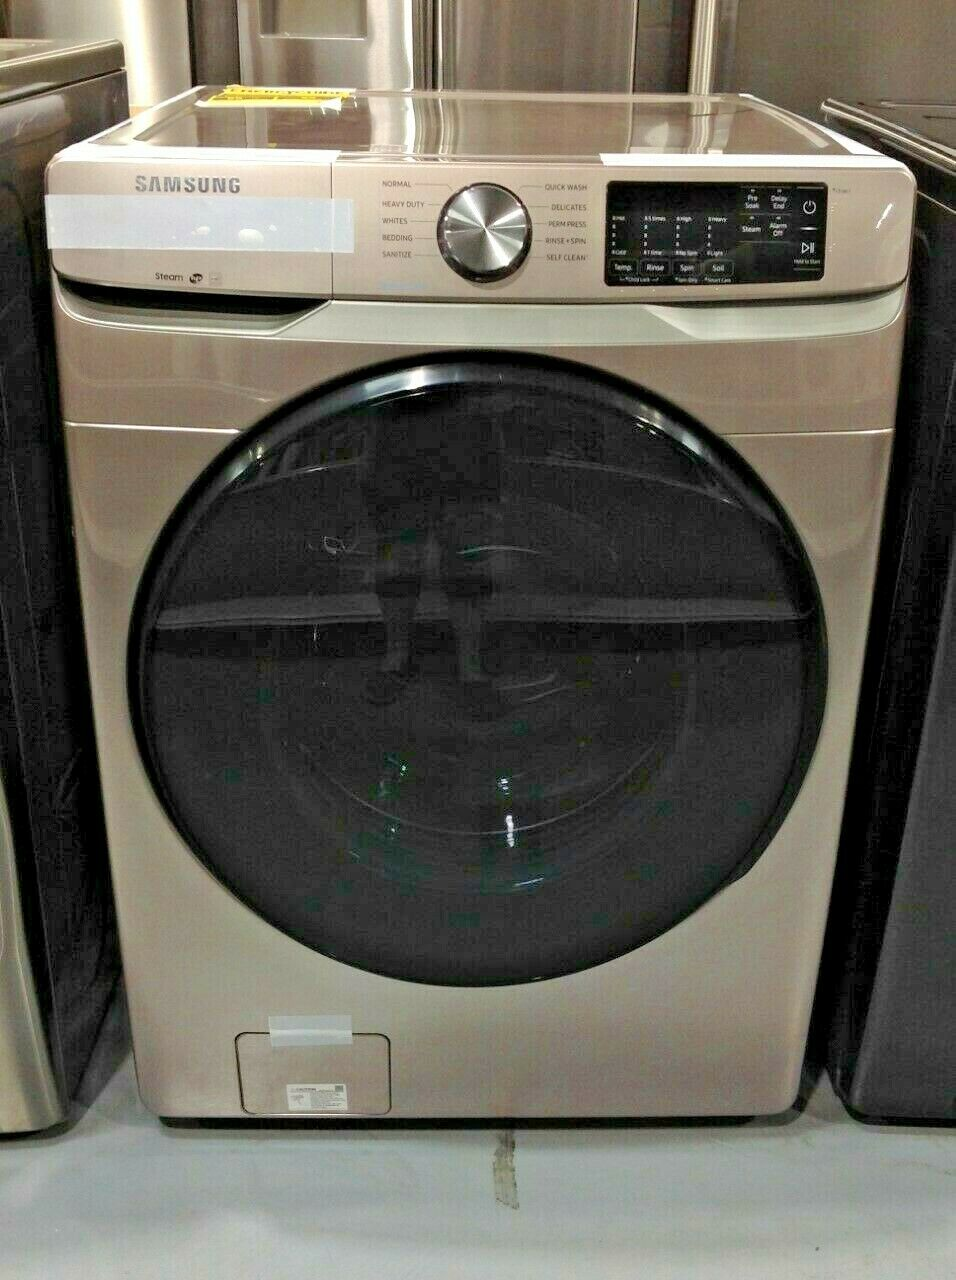 Washer Smart 27 Inch 4.5 cu. ft. Front Load Samsung WF45R6100AC Only Pickup